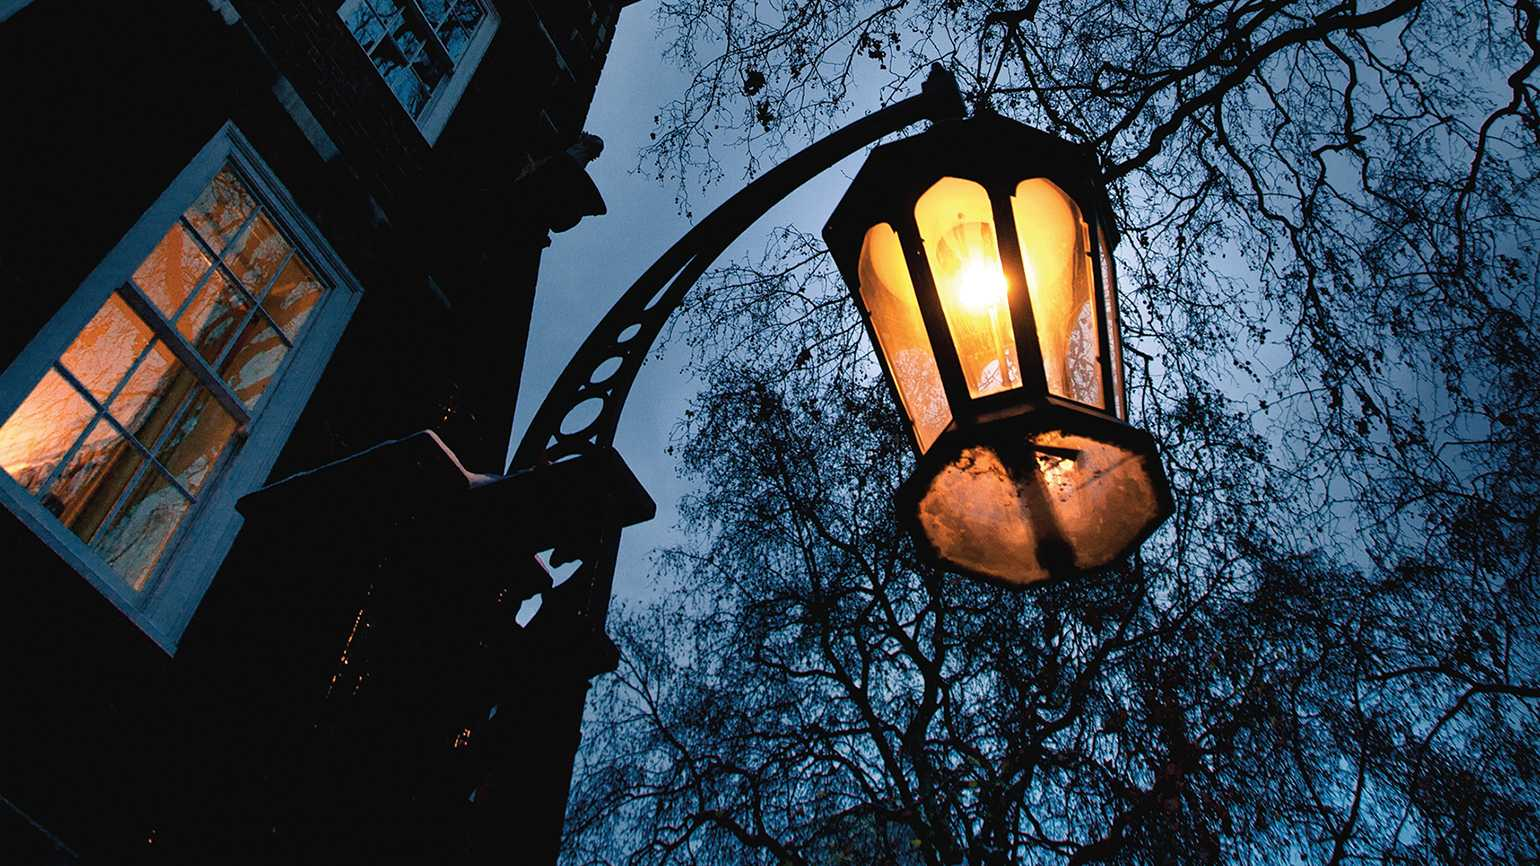 A street lamp shines in the wee hours of the night